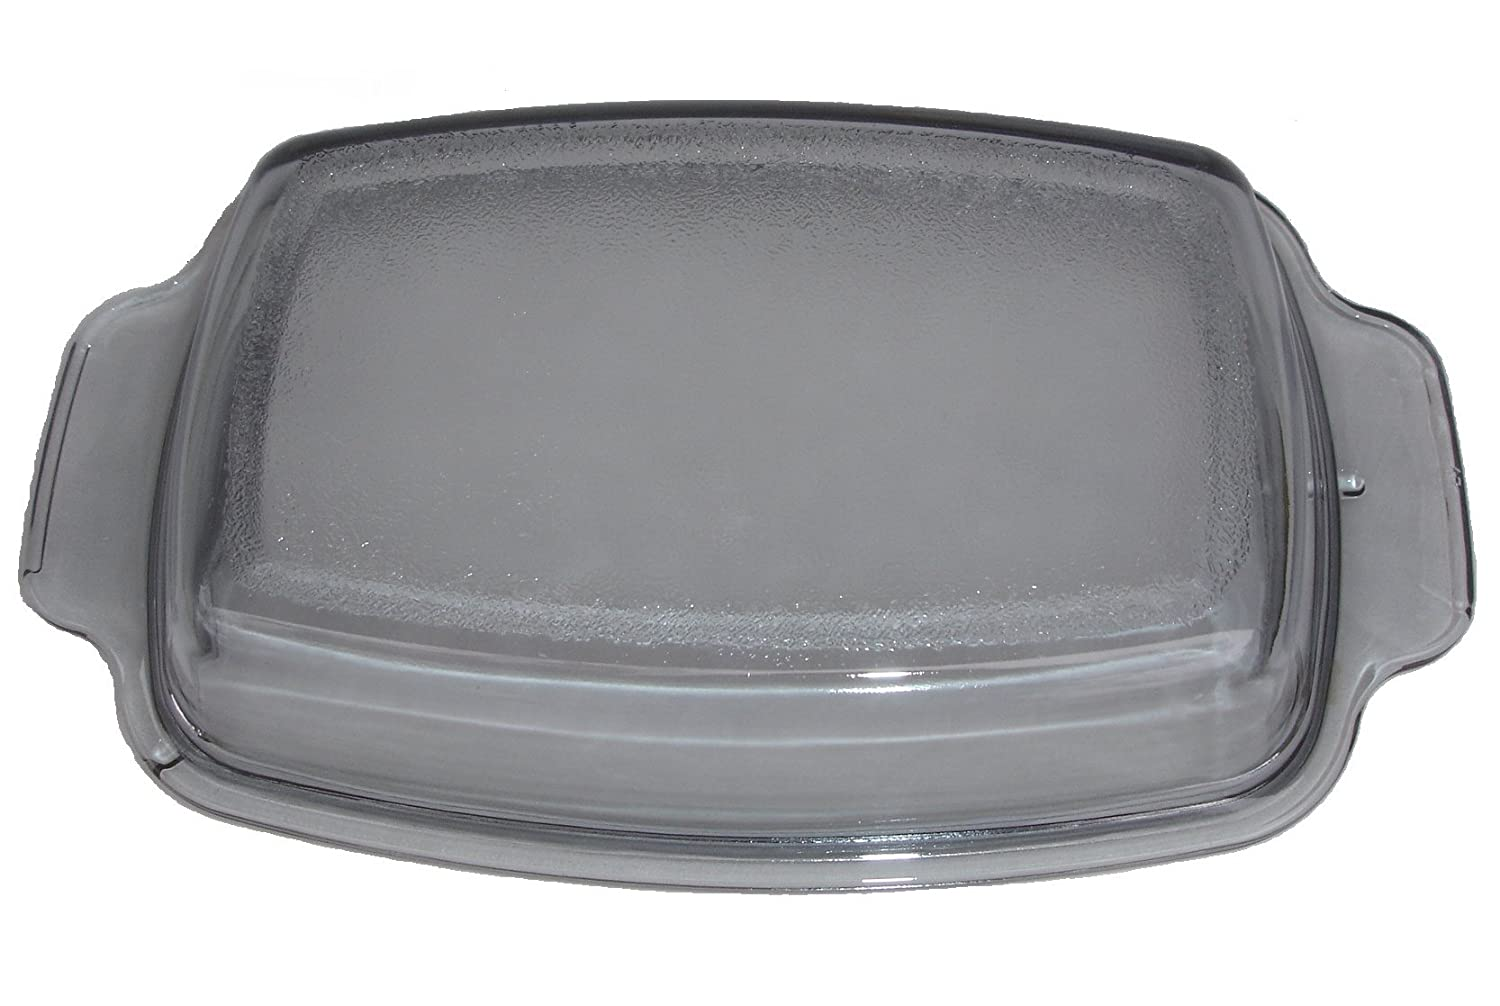 West Bend 4 Or 6 Quart 84114 & 84604 Slo/Slow Cooker Gray Replacement Part Lid